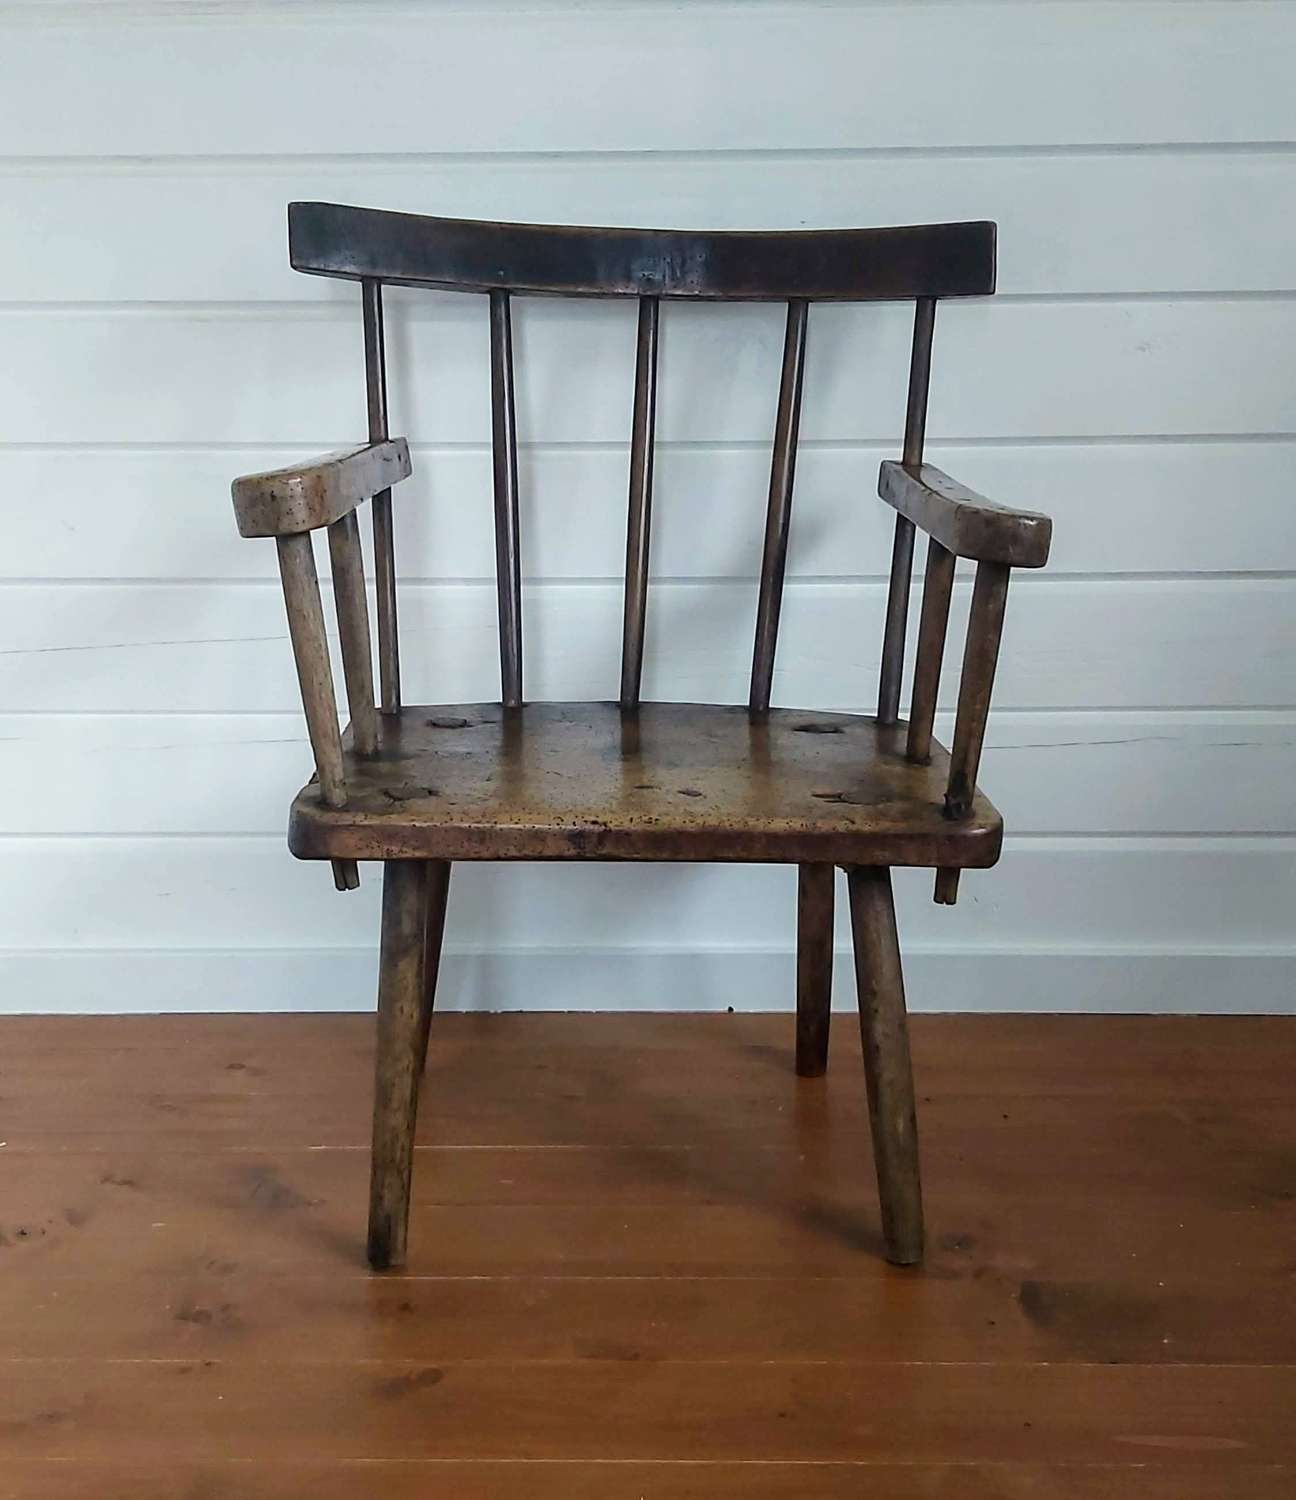 C1840 Irish Famine Chair